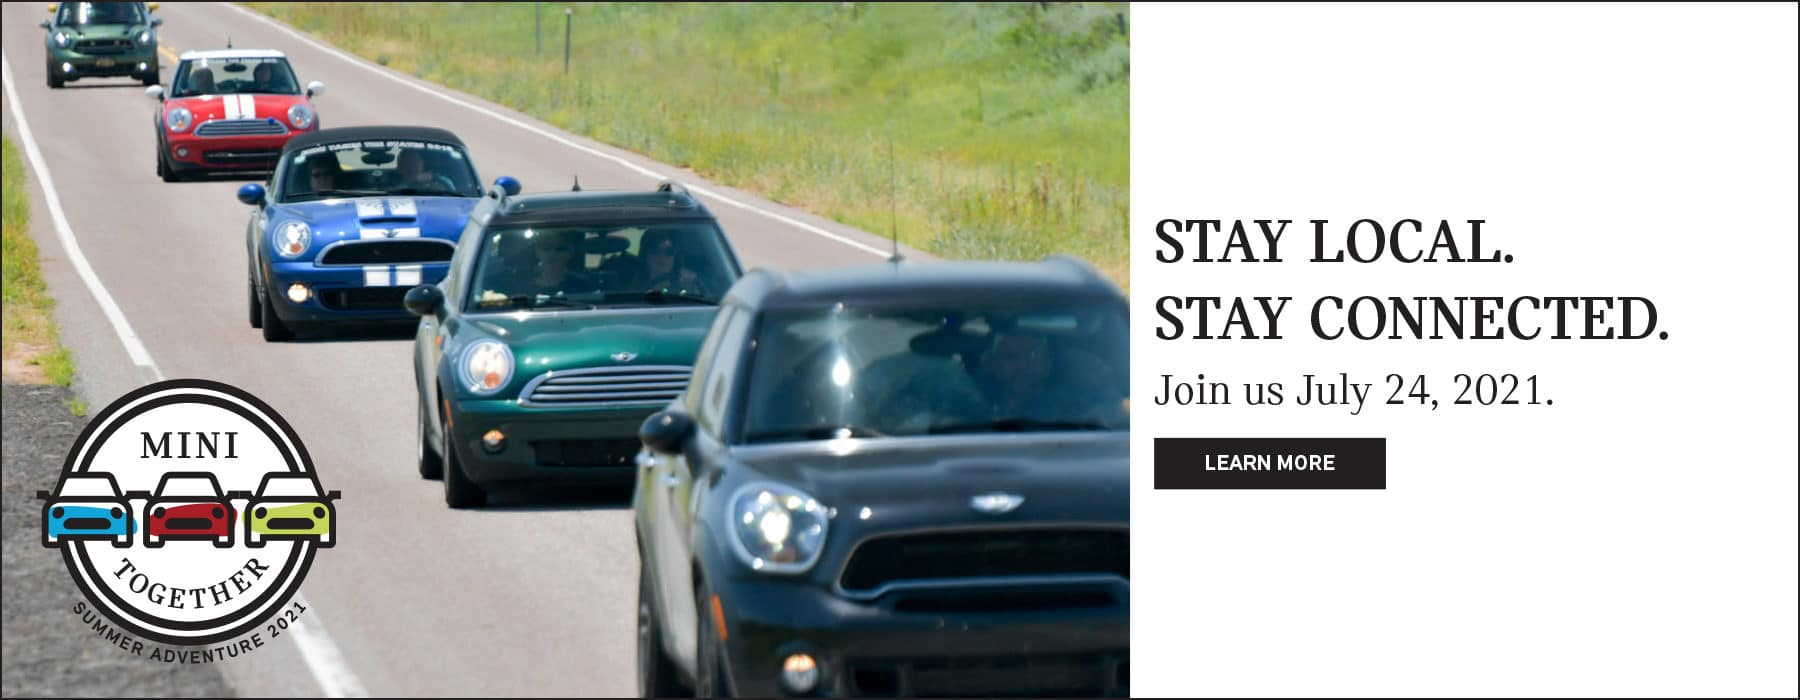 STAY LOCAL. STAY CONNECTED. Join us July 24,2021. Click to learn more. Image shows many MINI vehicles driving down the road in a line. MINIs MINI Together logo is placed over the image.